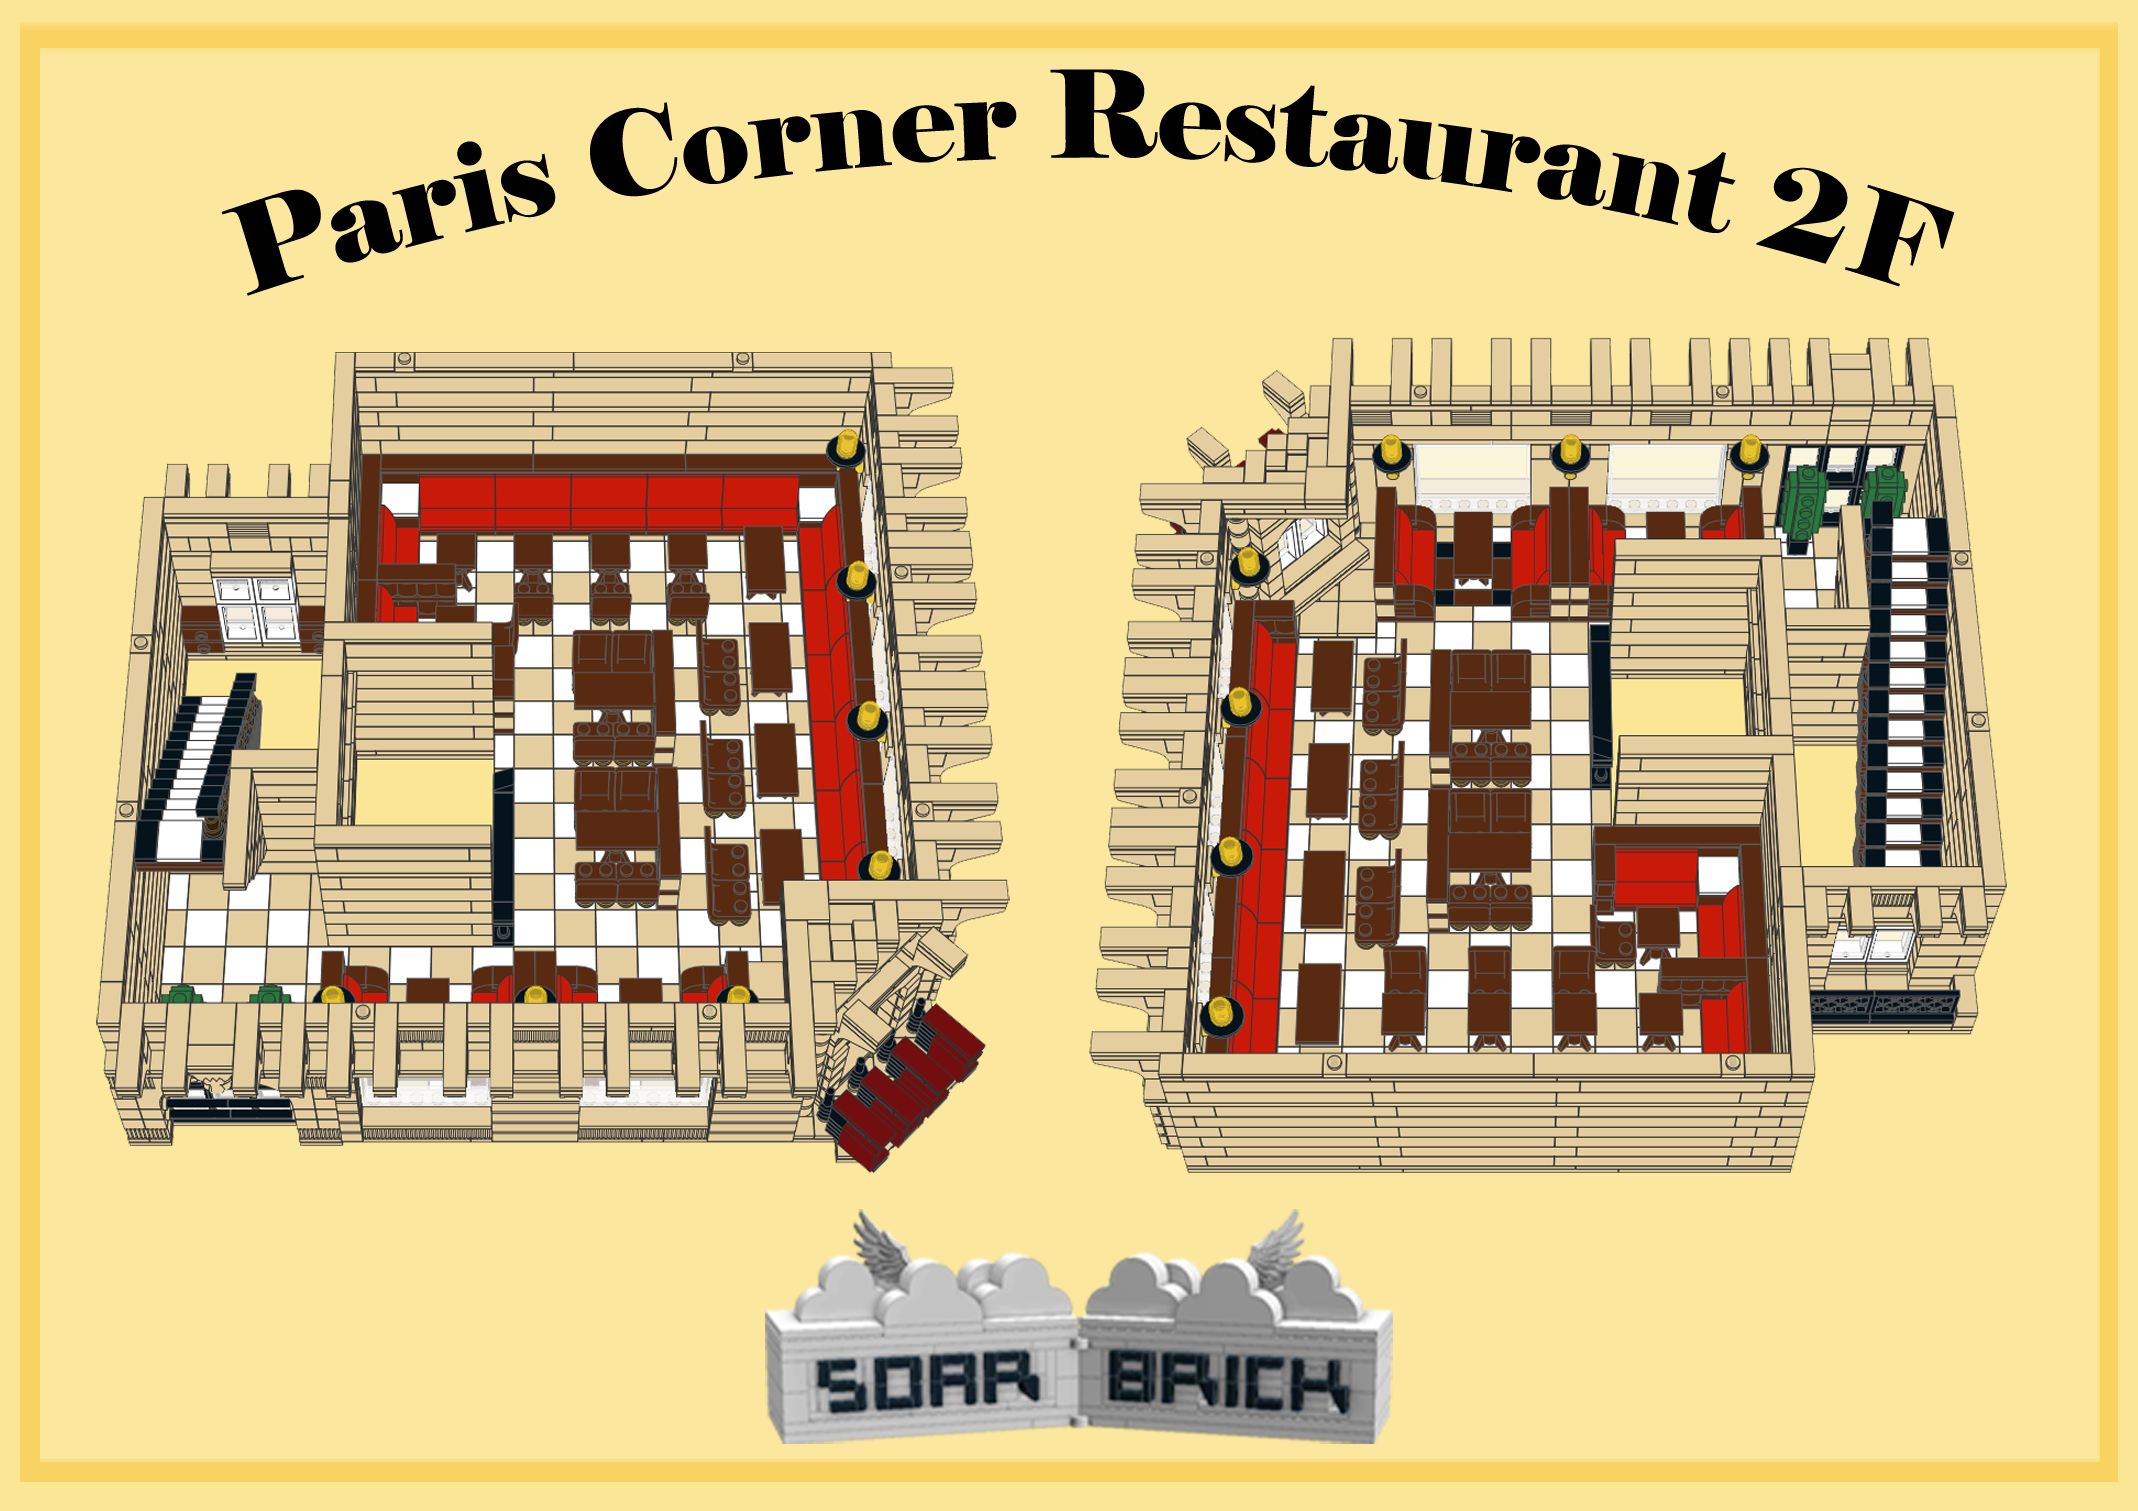 Paris Corner Restaurant